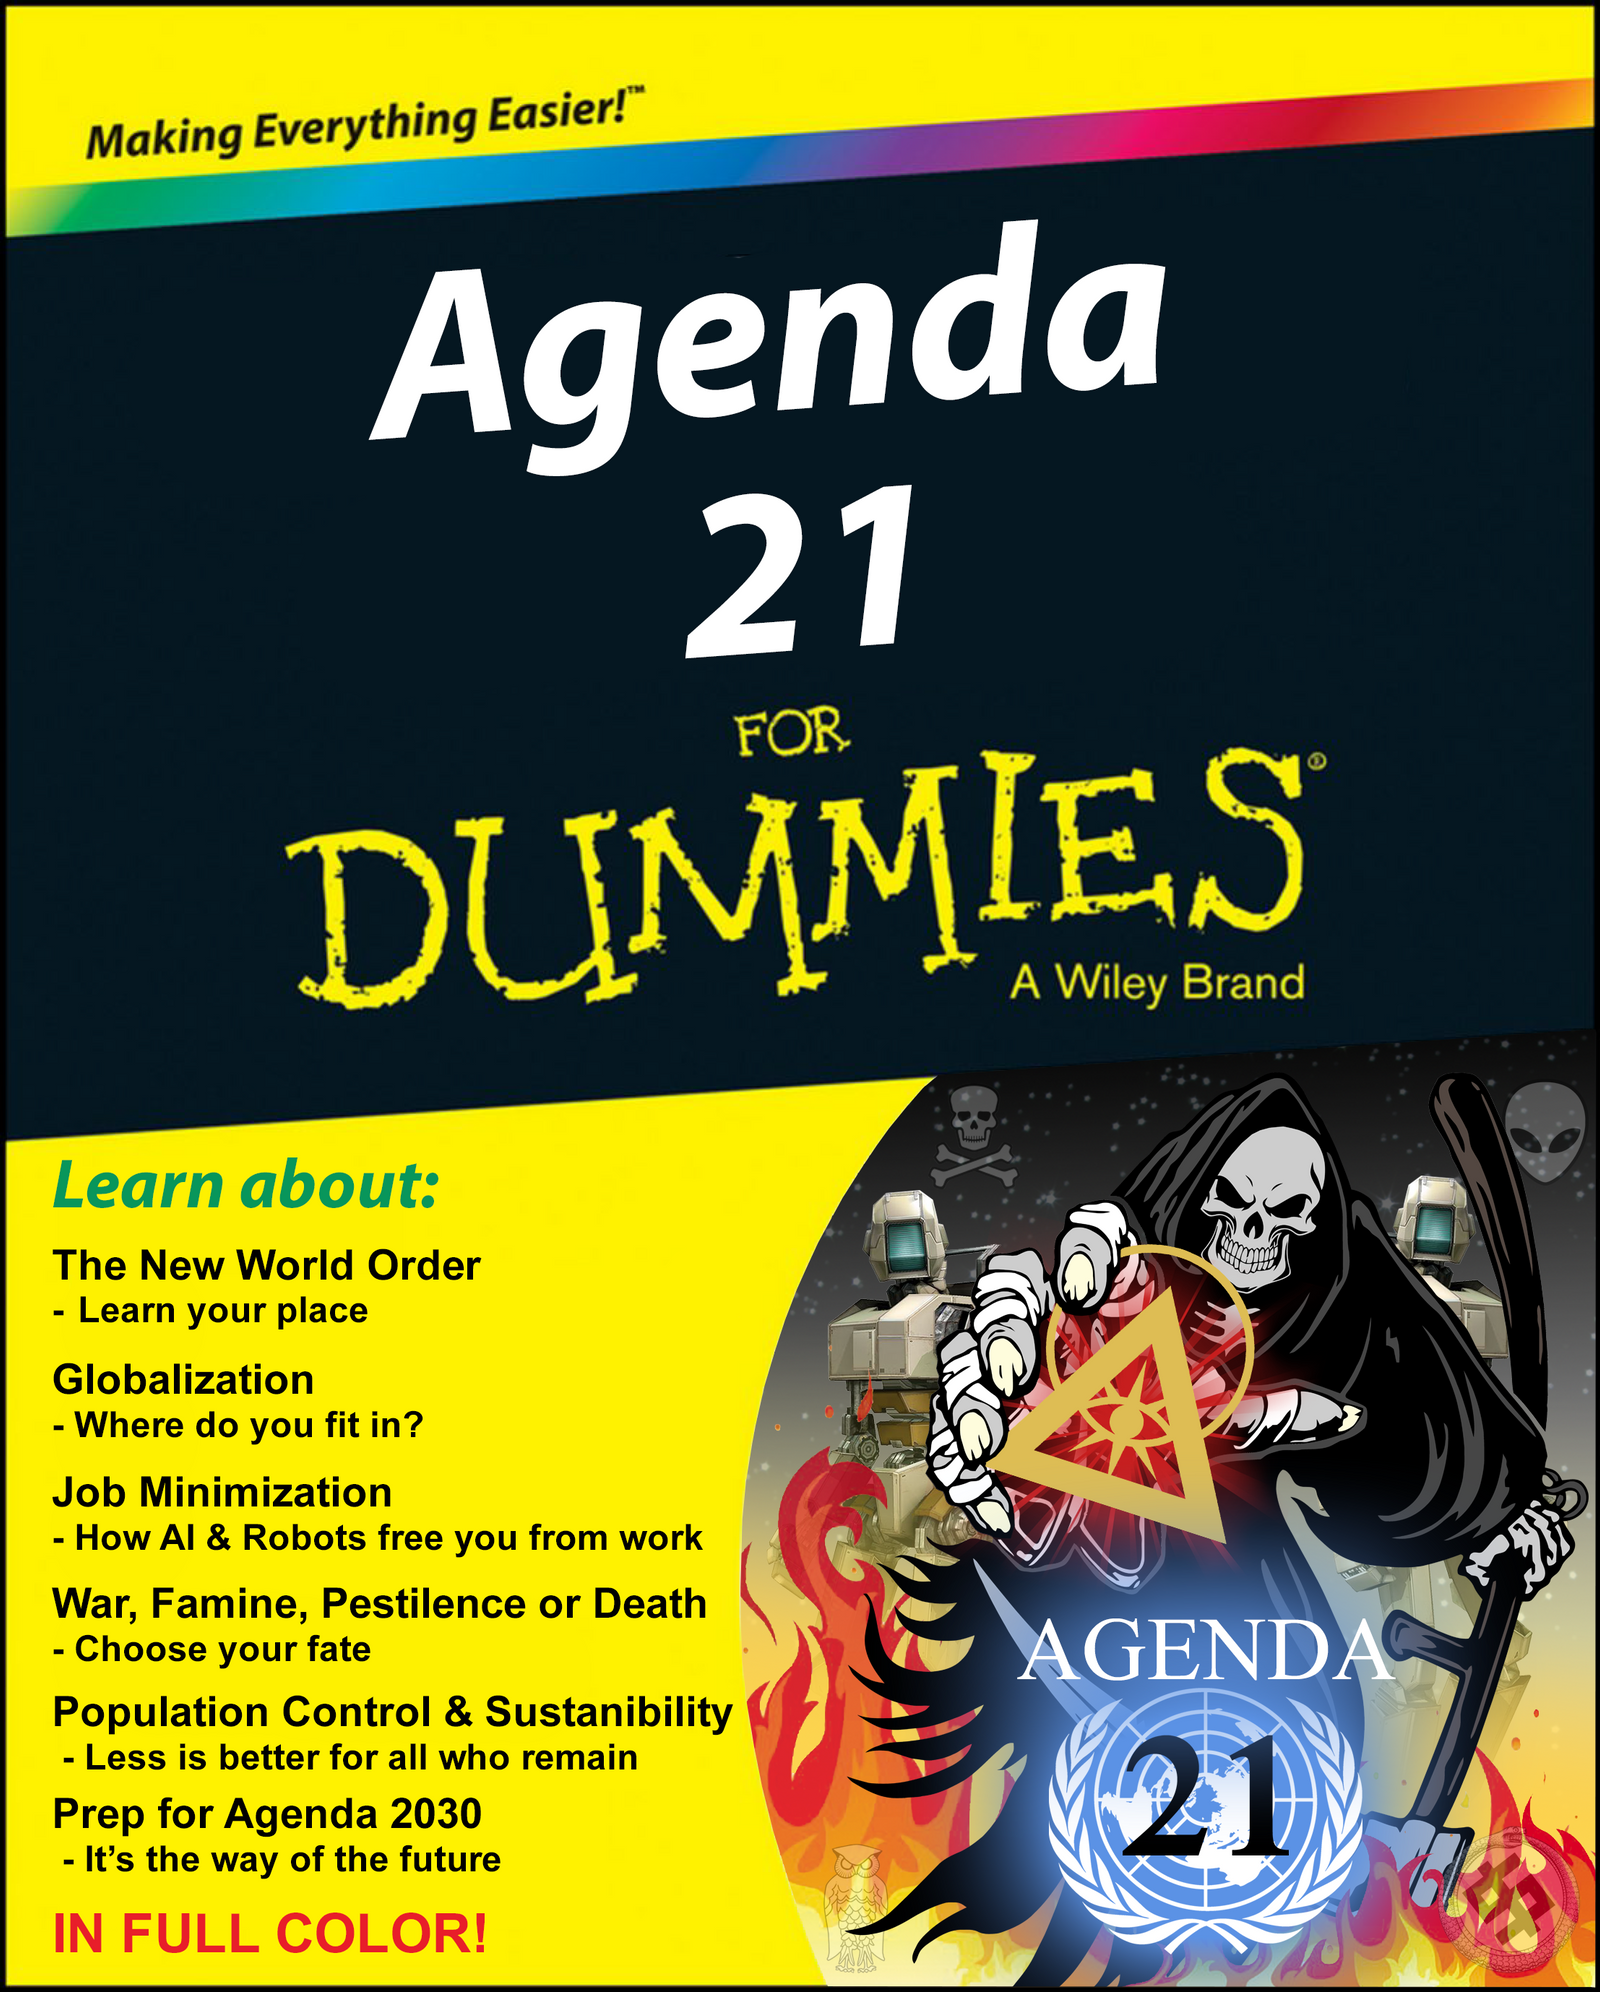 Agenda 21 For Dummies Book Cover by topher147 on DeviantArt